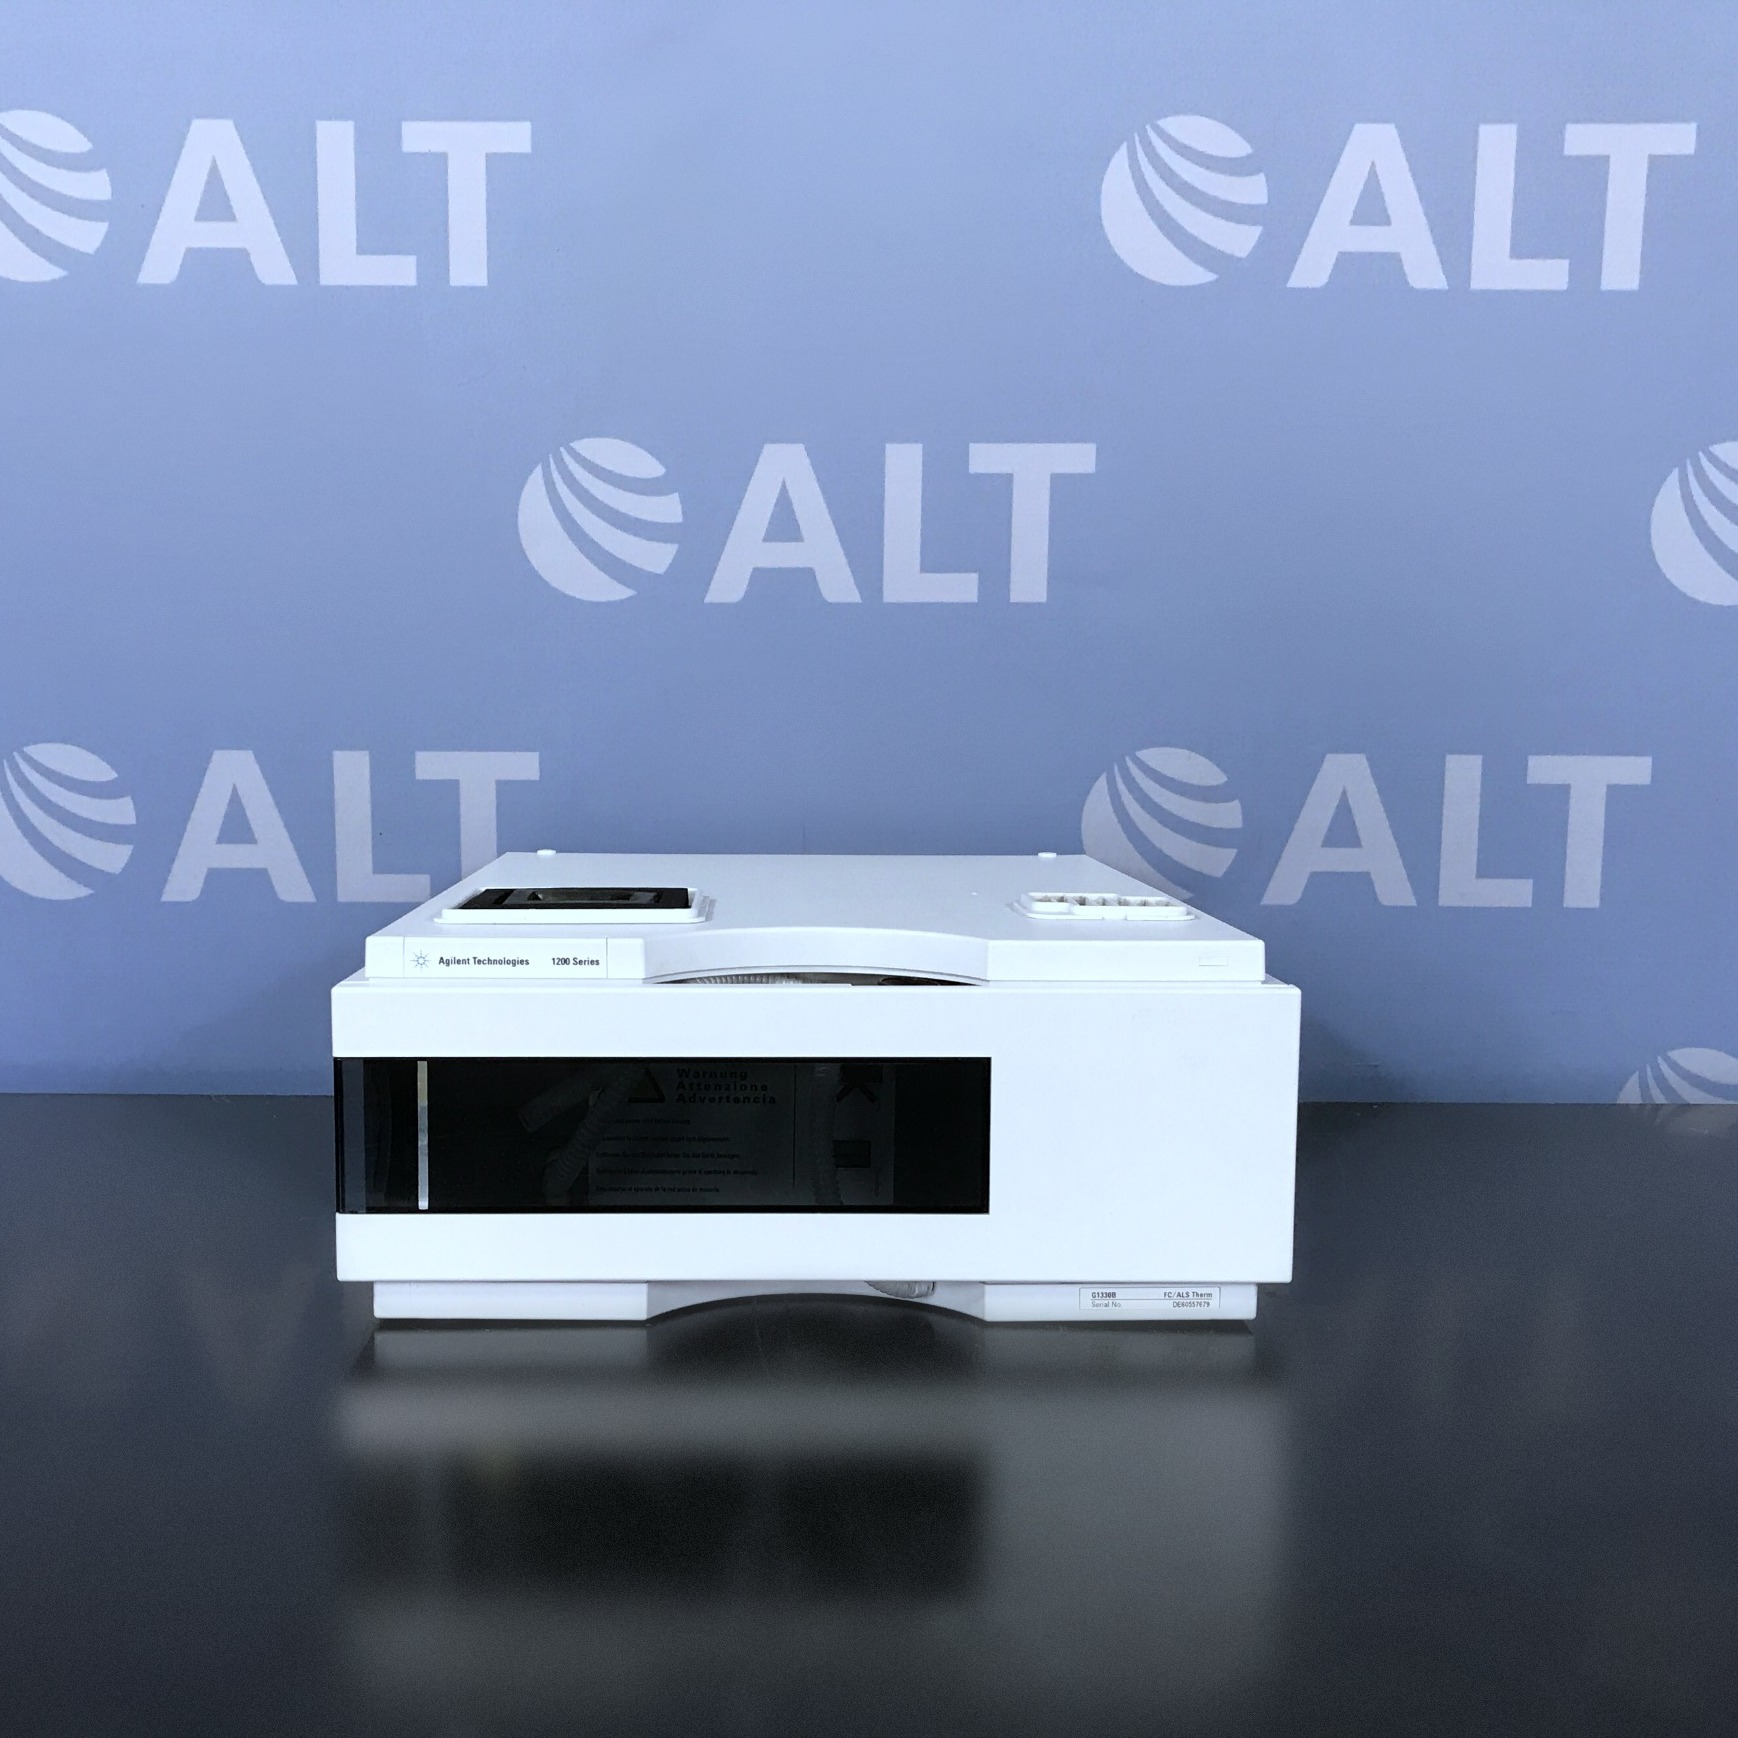 Agilent Technologies 1200 Series HPLC System with G1314B Variable Wavelength Detector Image